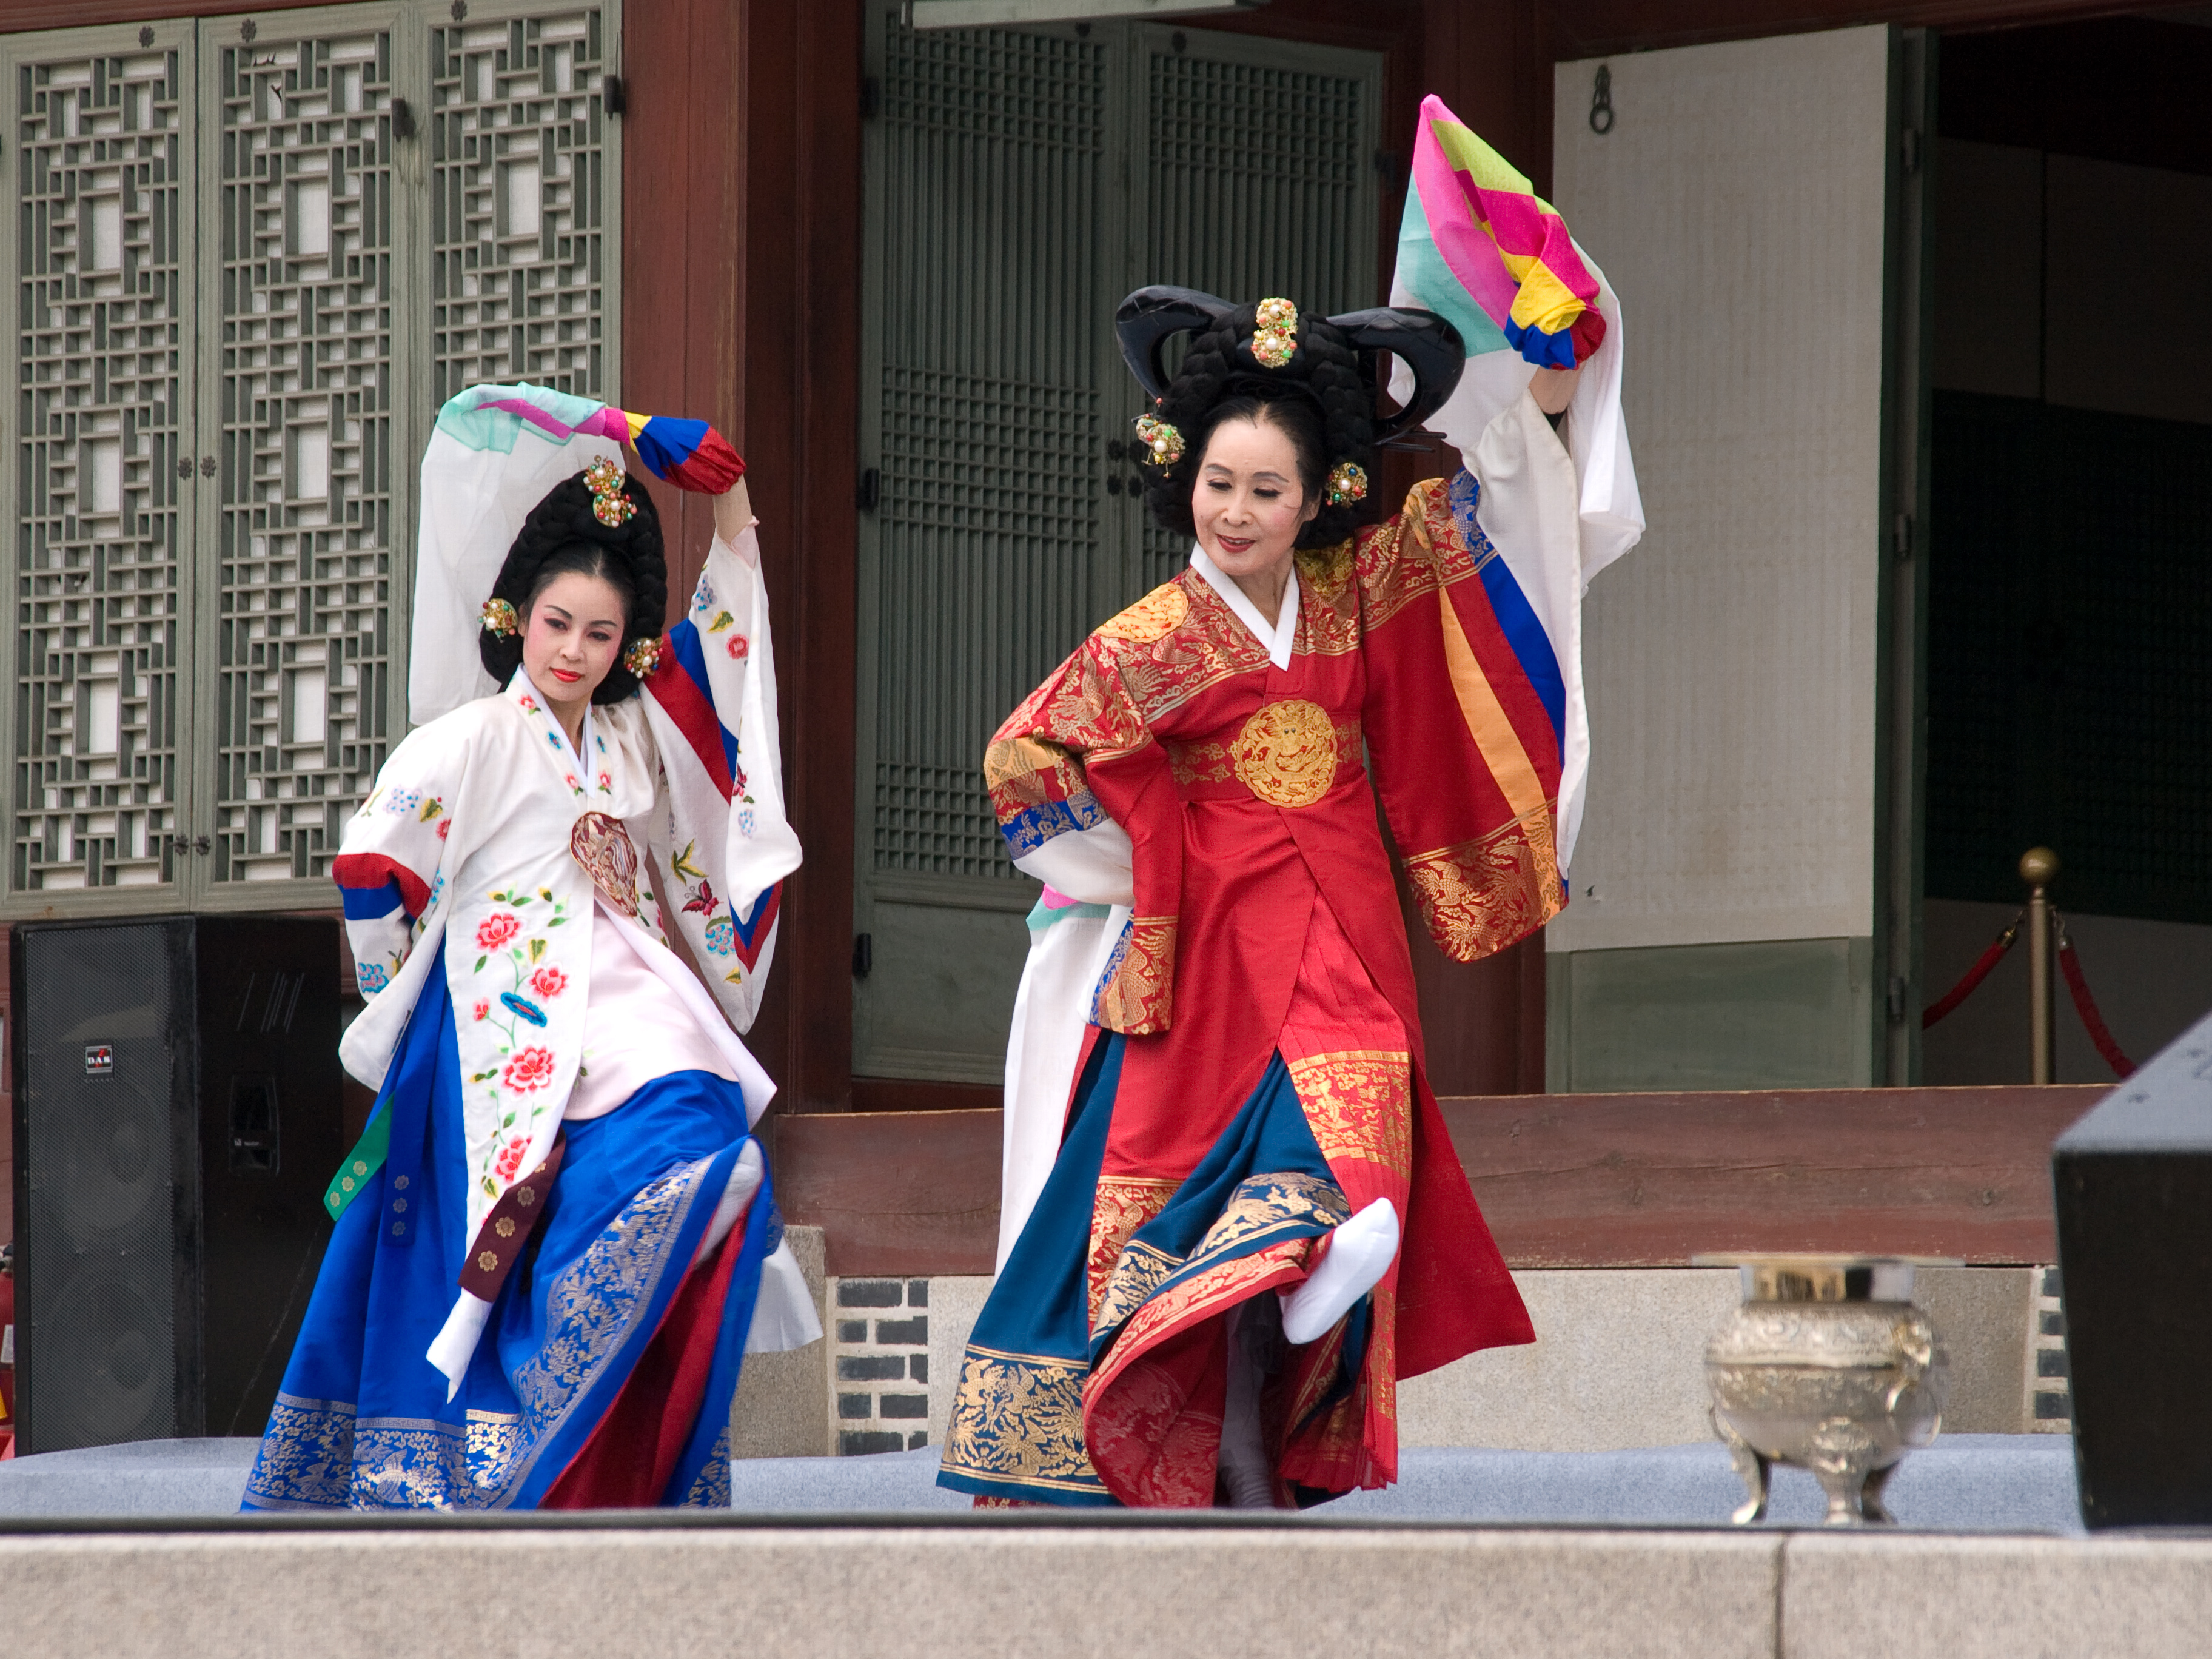 an analysis of traditional music and dances in the korean culture The chinese folk dances are rich and varied traditional chinese music when one speaks of folk dances in connection with chinese culture.